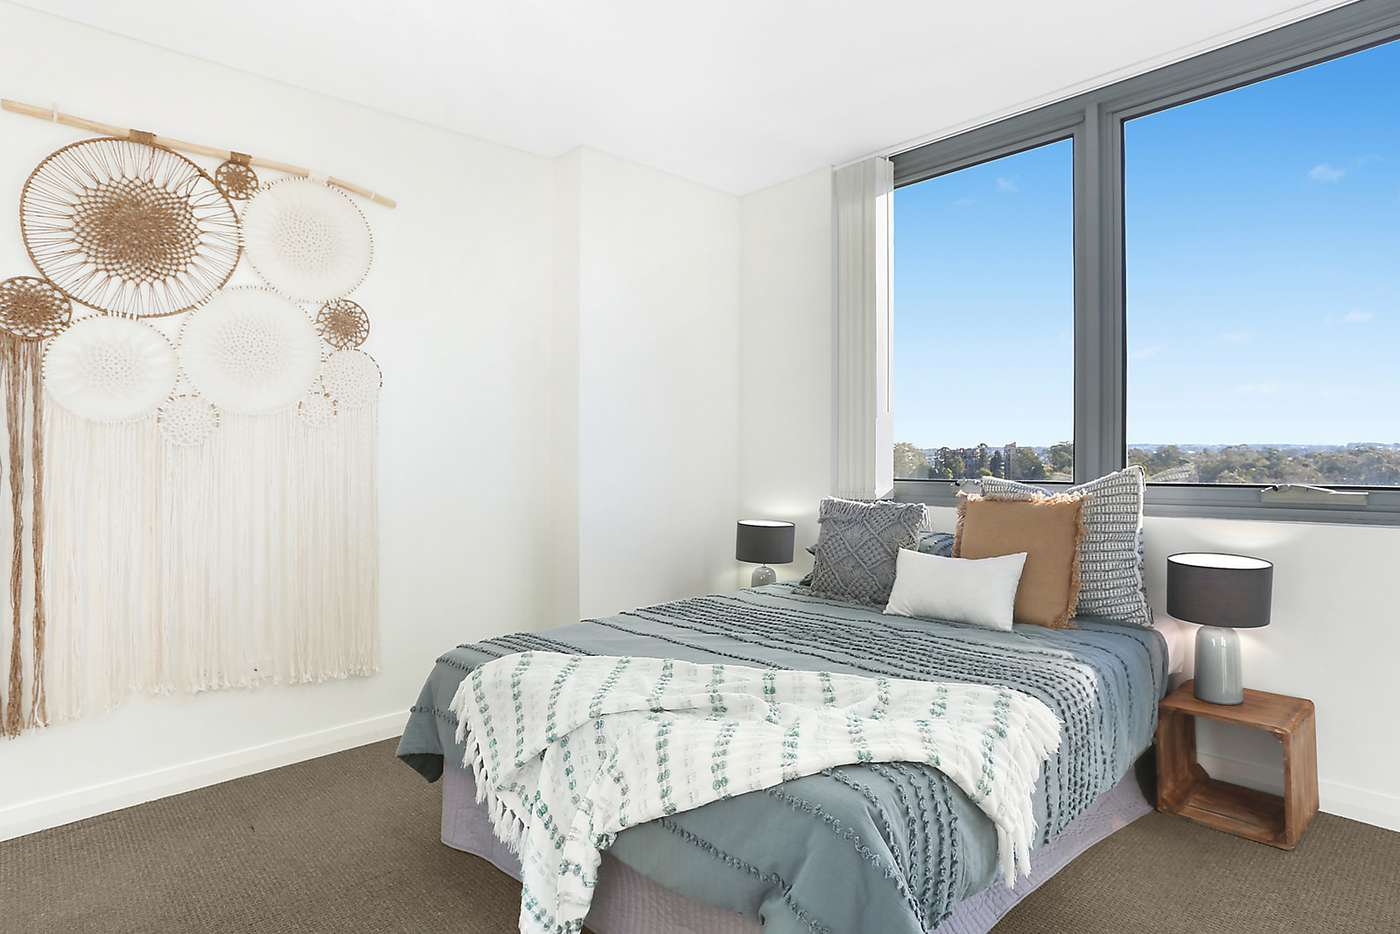 Fifth view of Homely apartment listing, 1501/29 Hunter Street, Parramatta NSW 2150